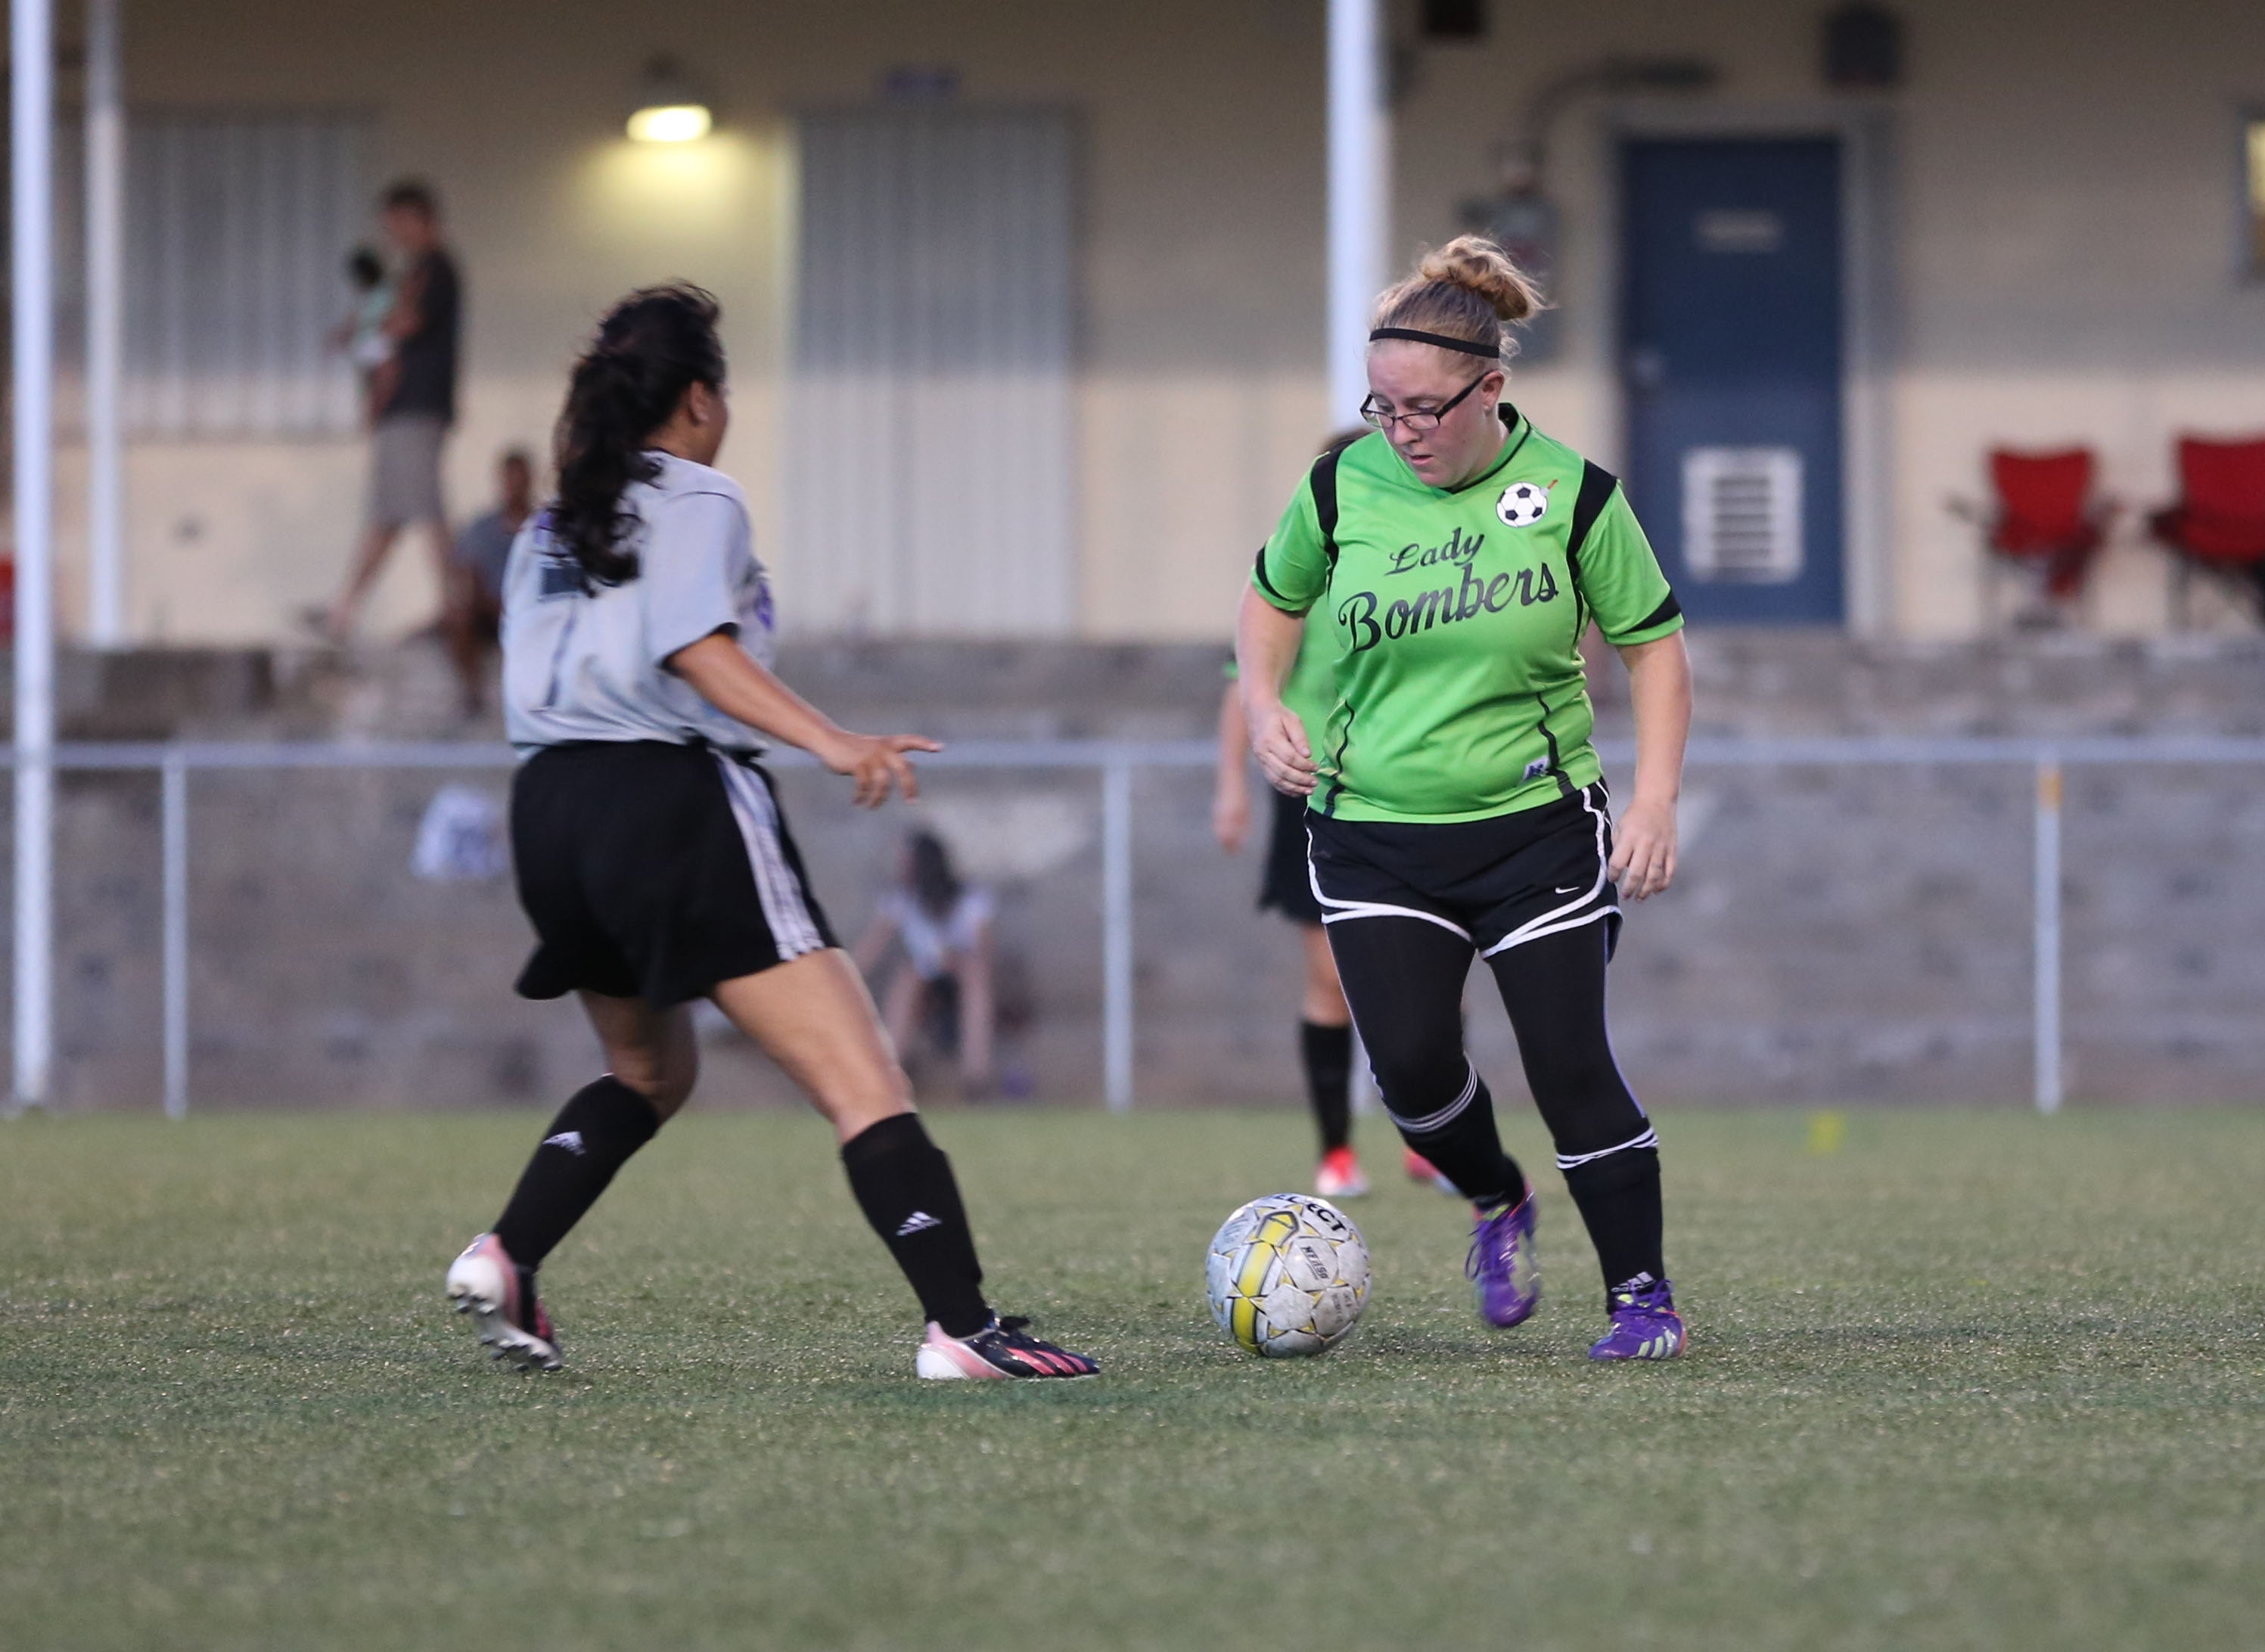 Docomo Pacific Soccer Moms League Resumed Sunday Pnc News First